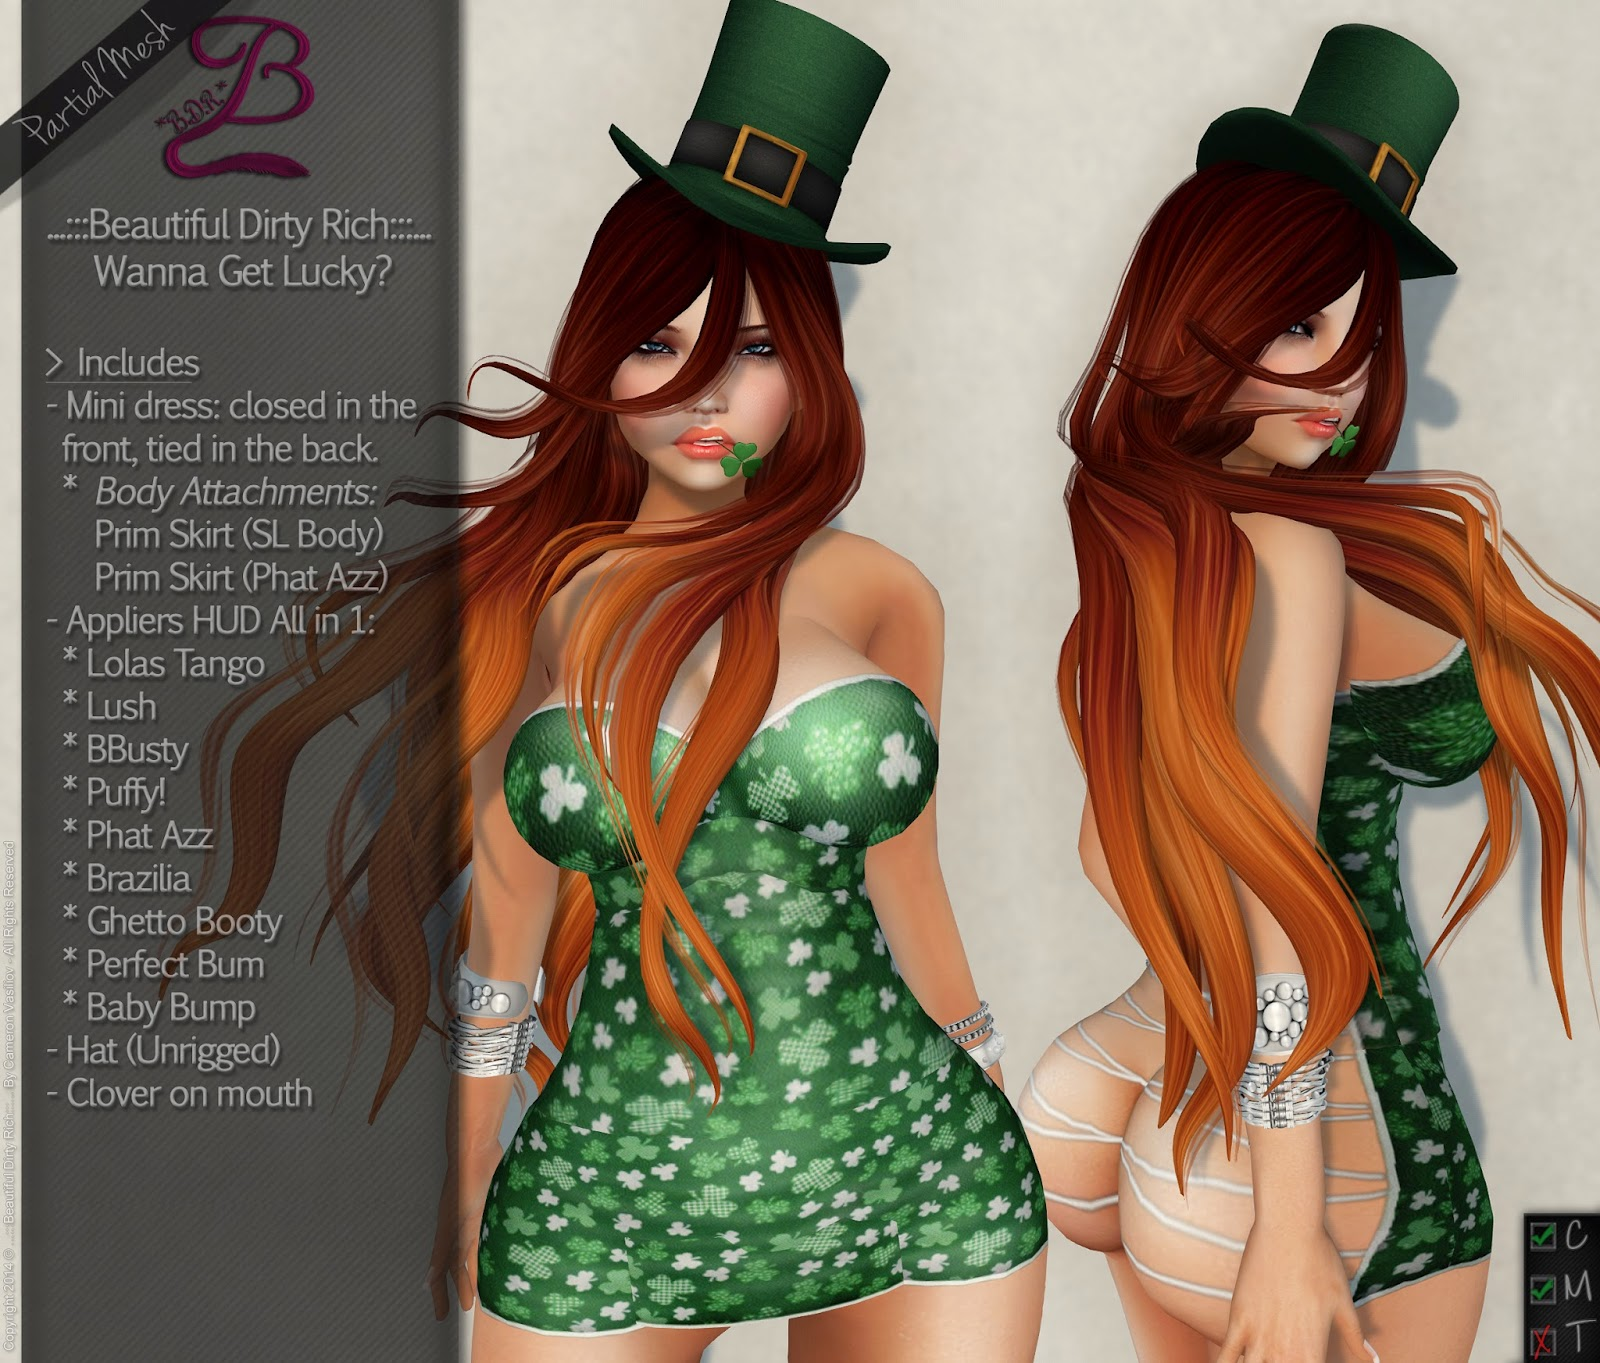 https://marketplace.secondlife.com/p/BDR-Wanna-Get-Lucky/5853944